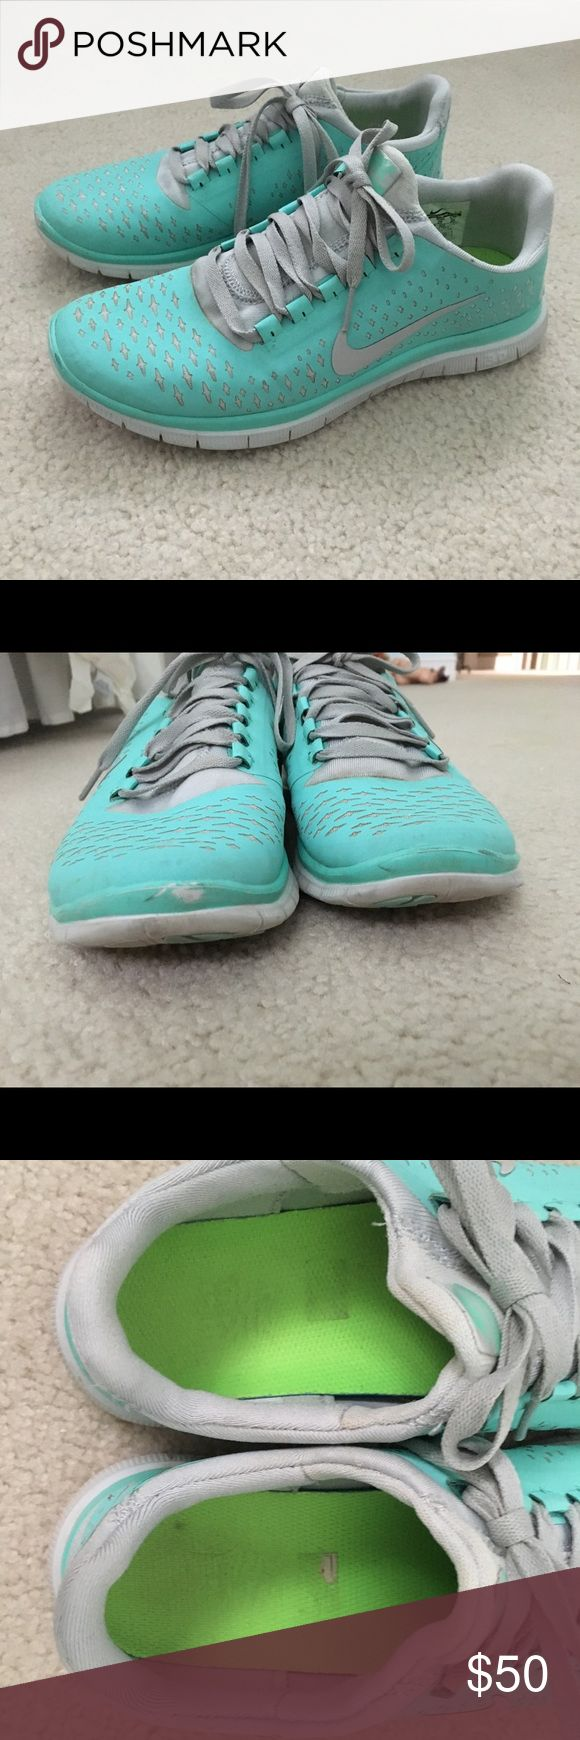 Nike Tiffany Blue Frees 3.0 Rare Sz8 Size 8 Tiffany Blue Free Runs. I've worn them a few times, only to run in. They're super comfy just not my size! The exterior look brand new. The bottoms haven't been worn down, they're still good to run in and still have traction. I love the color and look, they're just too small. Nike Shoes Sneakers